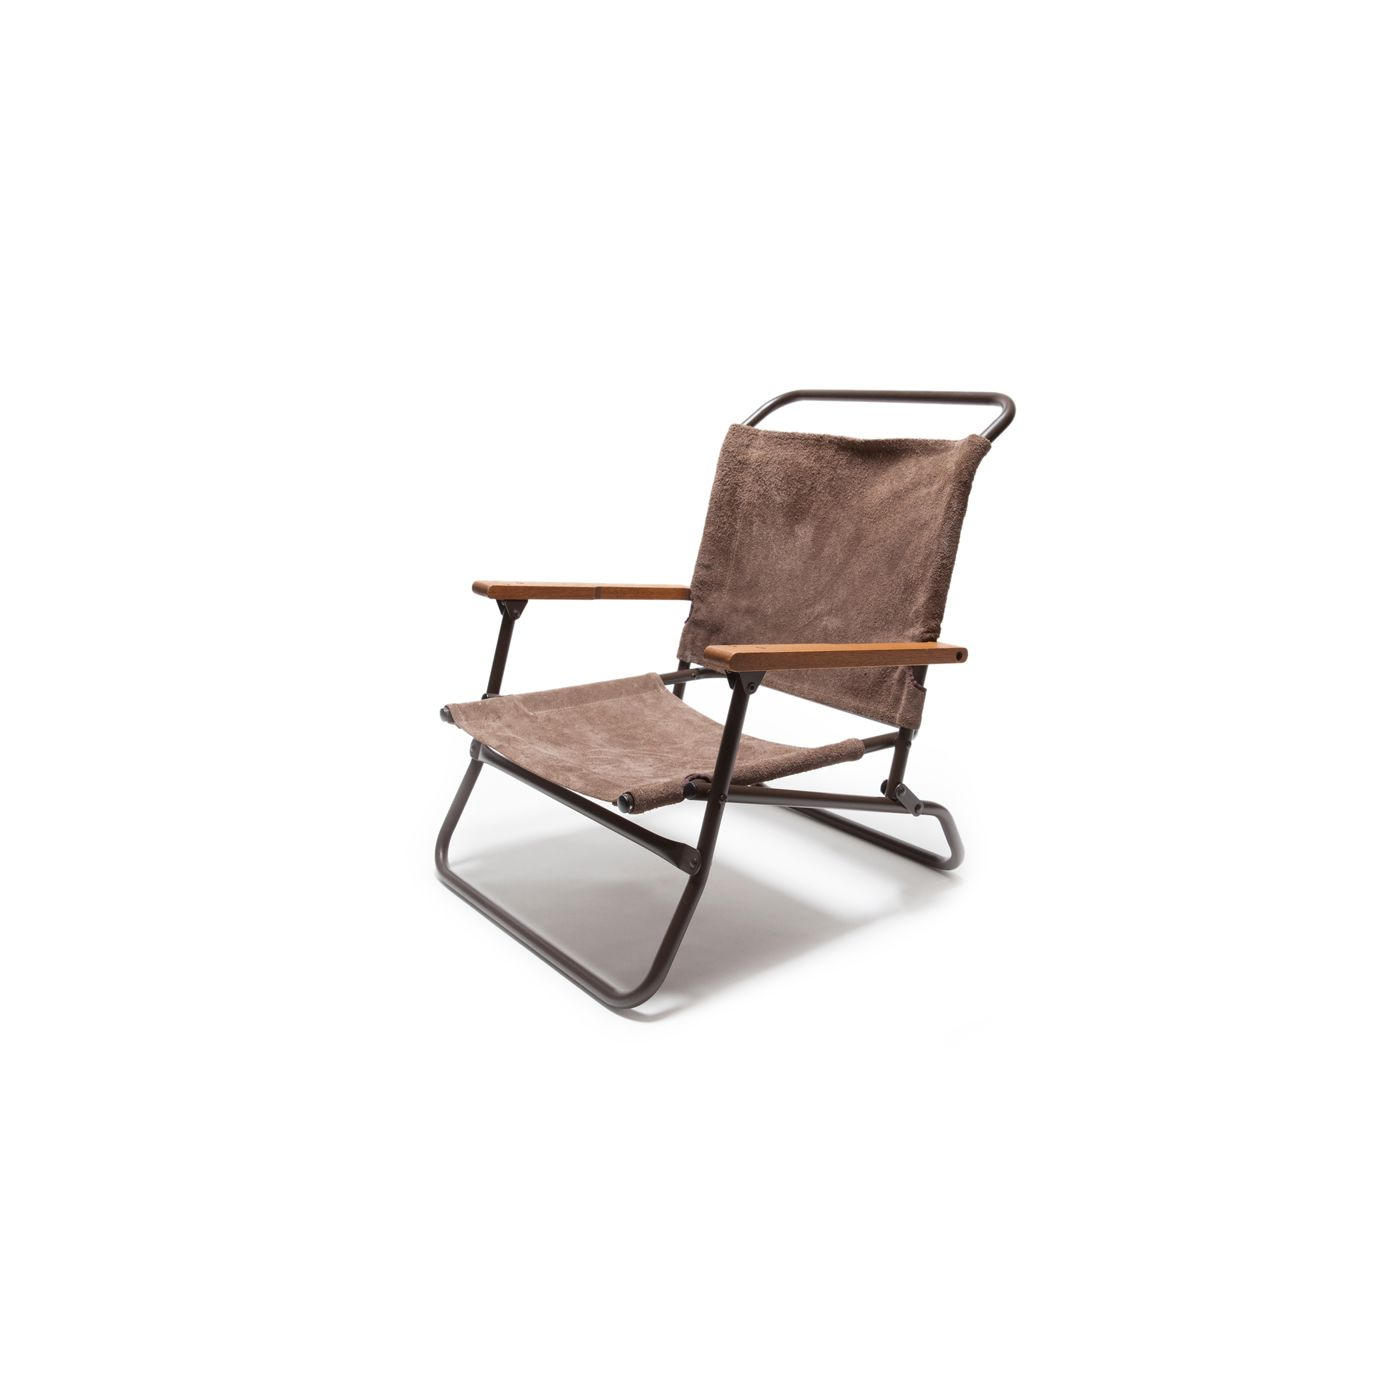 folding chair hack adams adirondack stacking in banana hb 02353 hobo leather low camp props pinterest